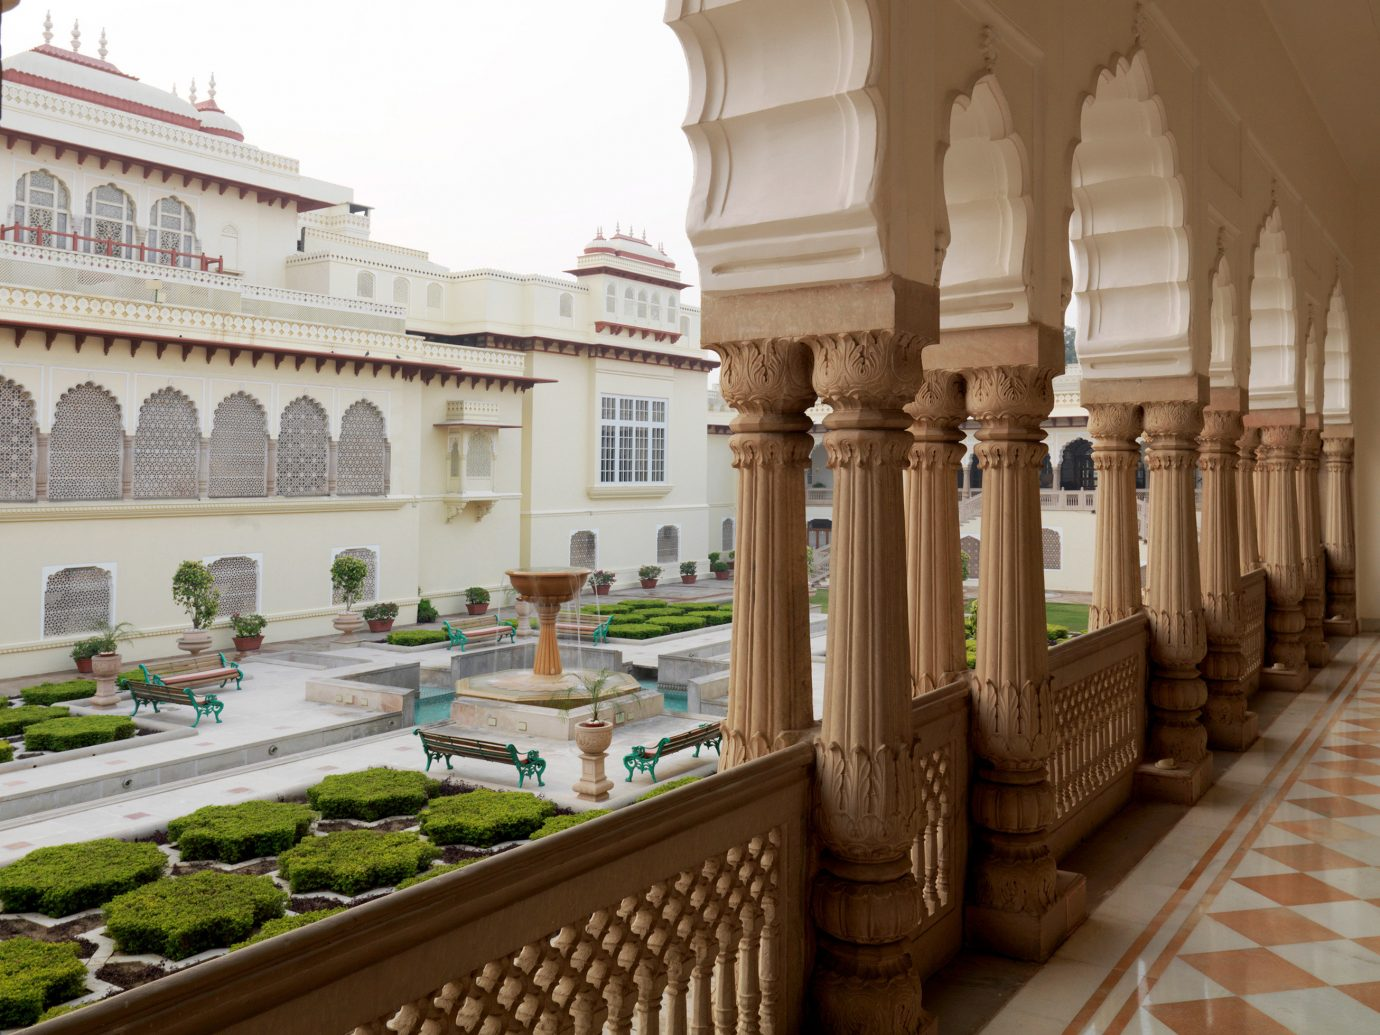 Trip Ideas building palace estate Courtyard mansion interior design ancient history tourist attraction plaza place of worship colonnade